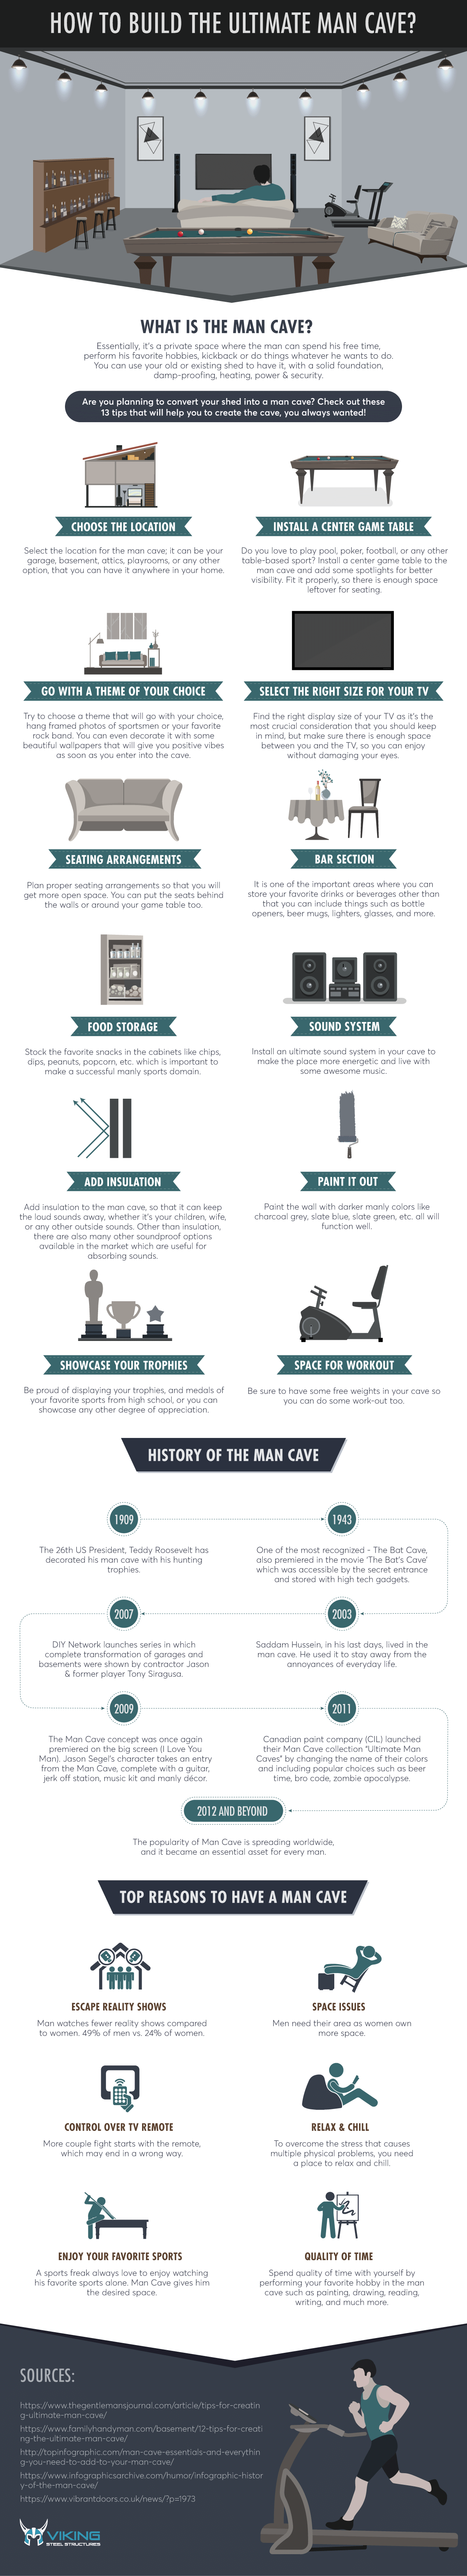 The Ultimate Male Domain: How to Build Your Own Man Cave - Infographic